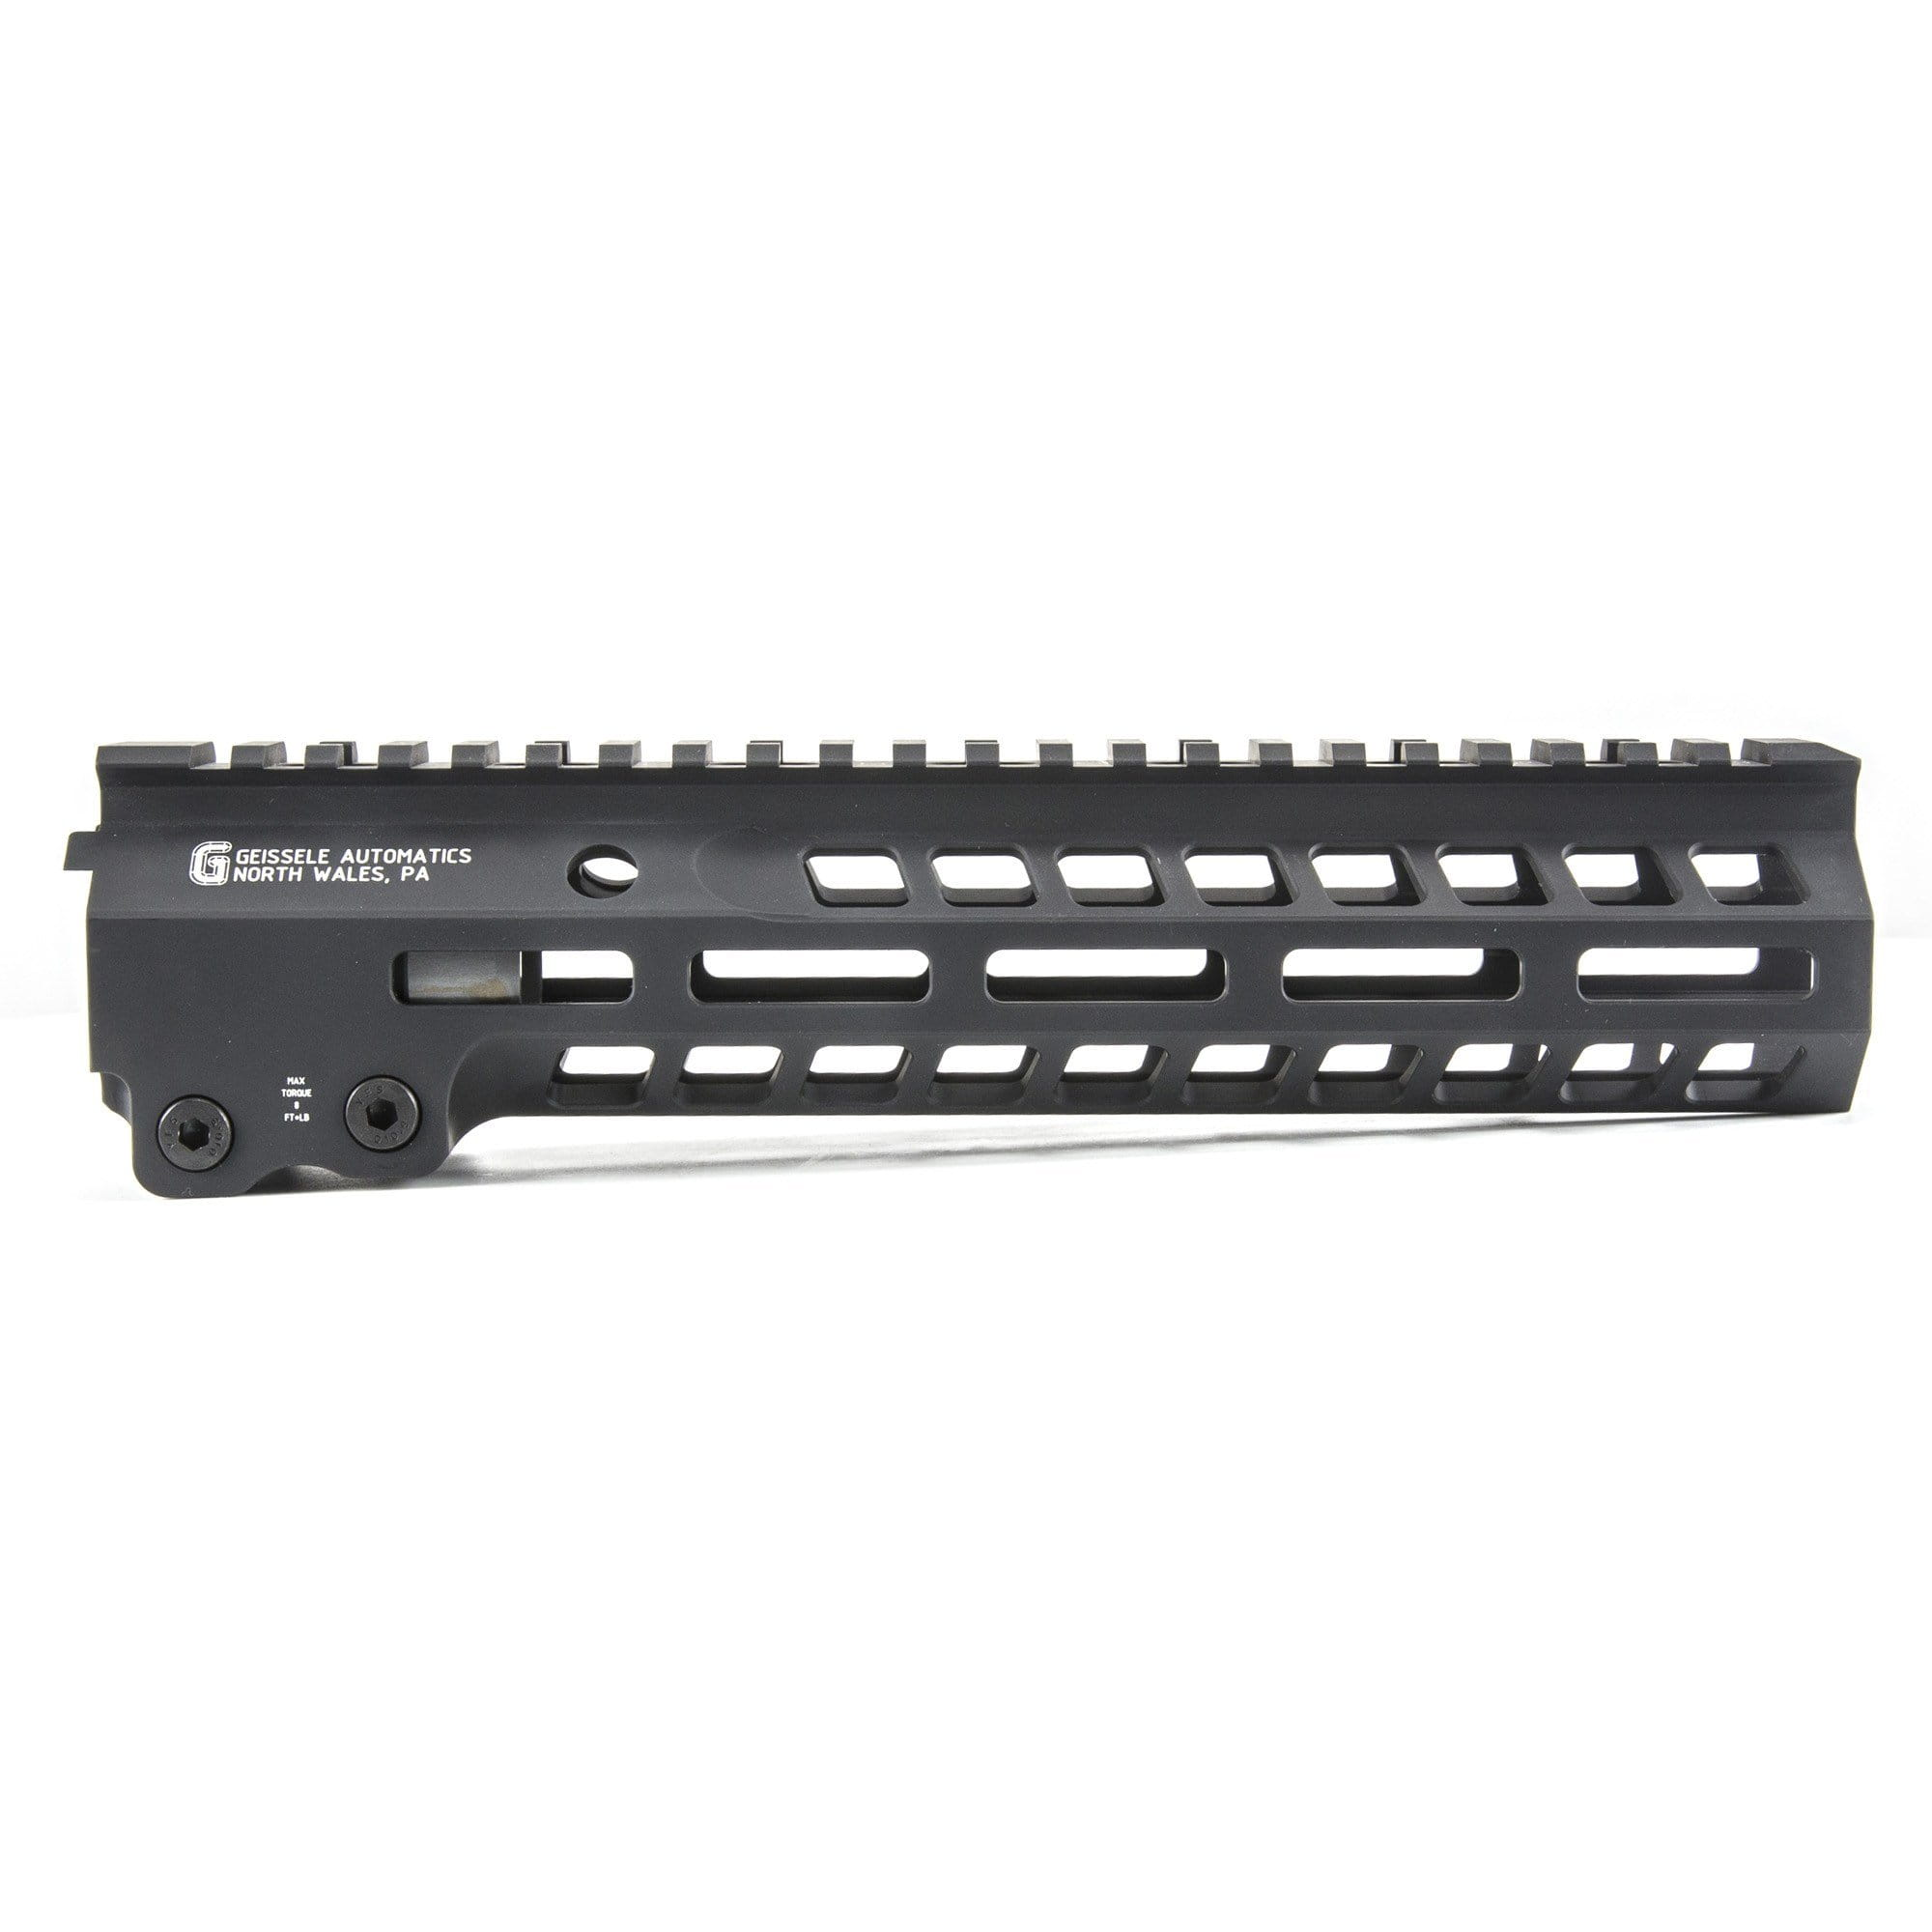 "Łoże 9.5"" do AR-15 - Super Modular Rail MK14-M-LOCK"